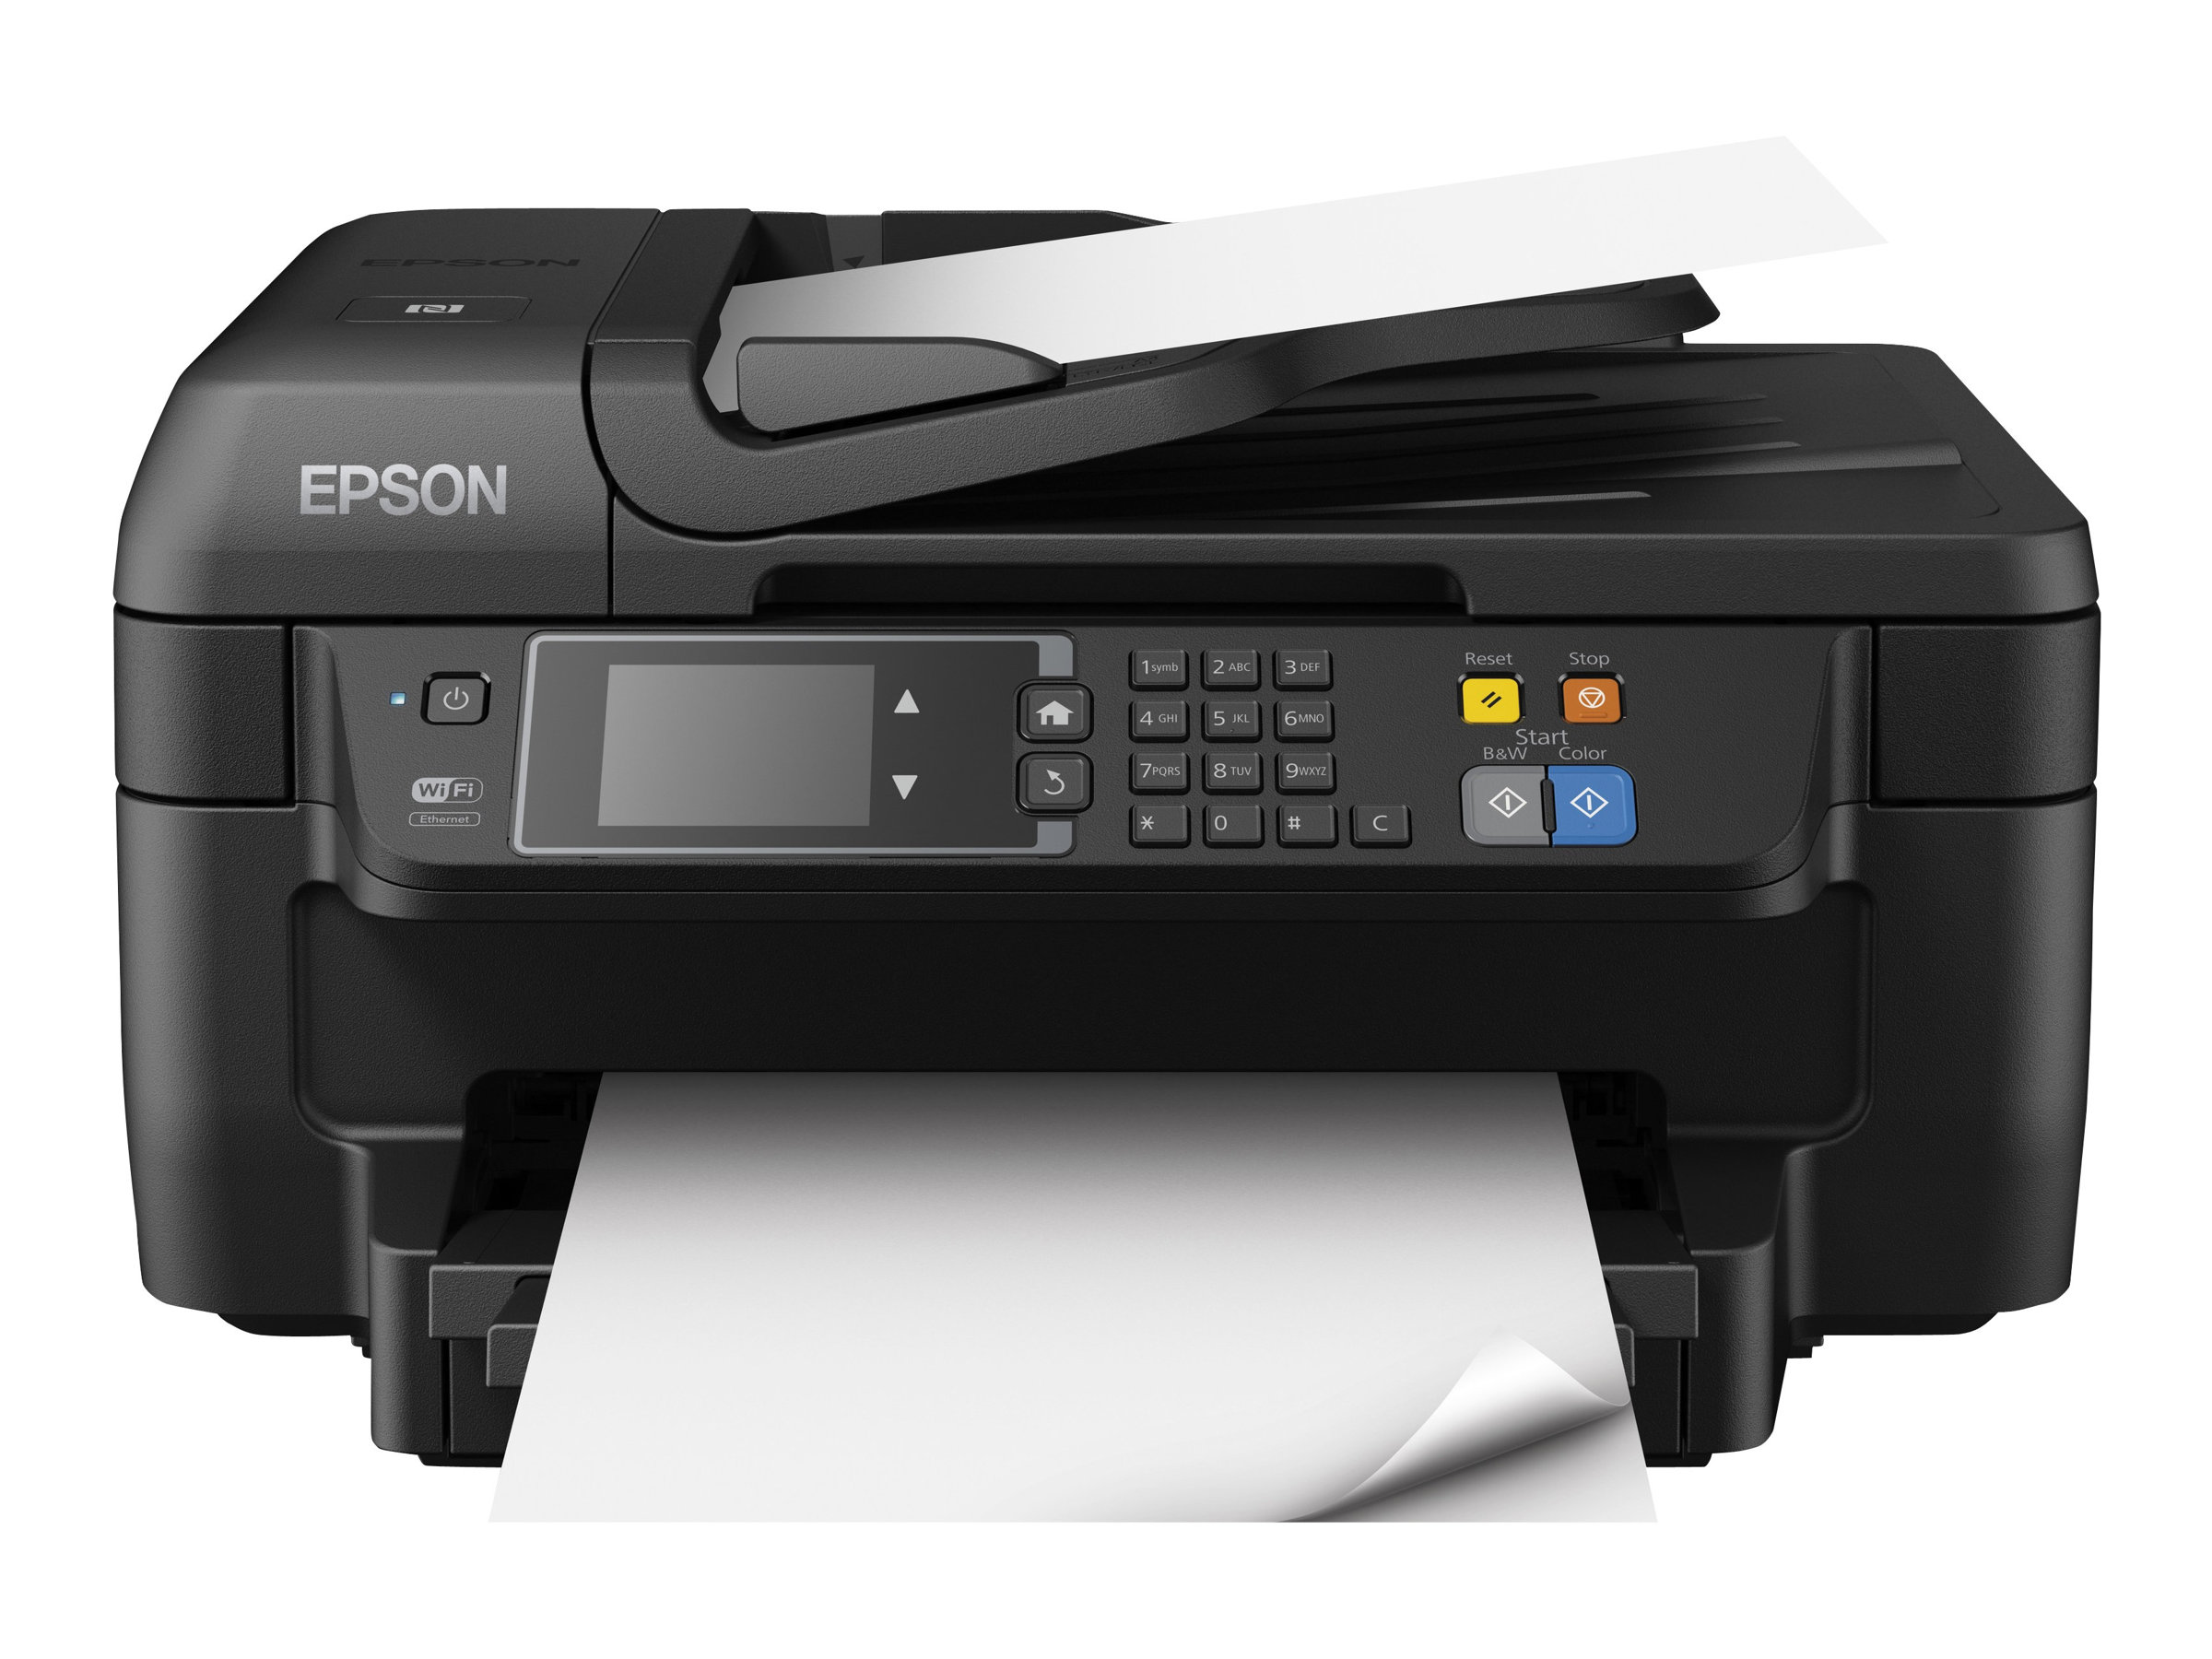 Epson WorkForce WF-2660 All-In-One Printer - $149.99 less instant rebate of $36.00, C11CE33201, 17840241, MultiFunction - Ink-Jet